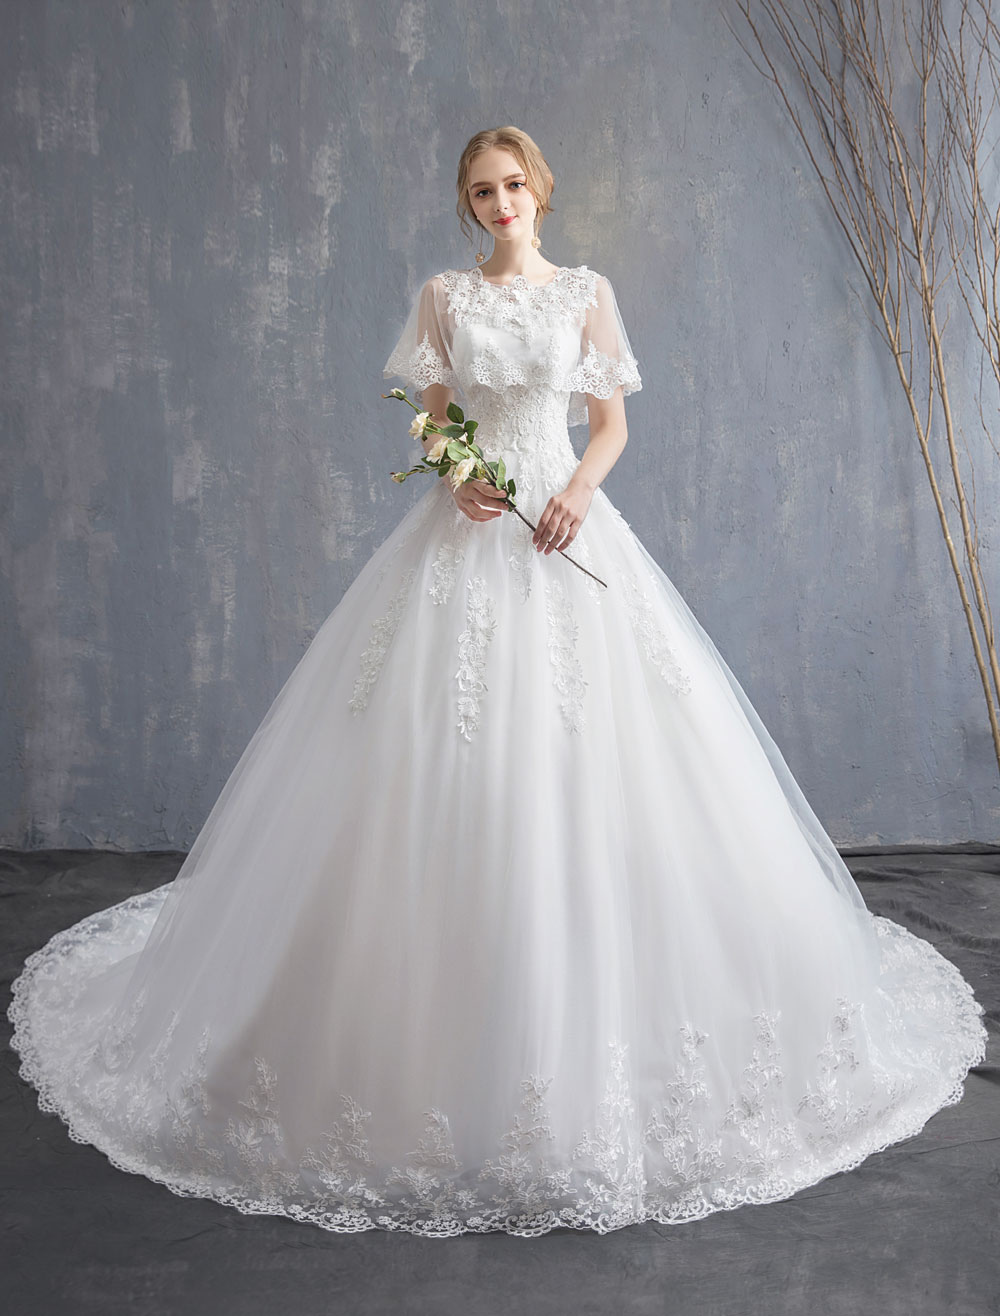 Princess Wedding Dresses Ball Gown Lace Beaded Tulle Long Train Bridal Dress